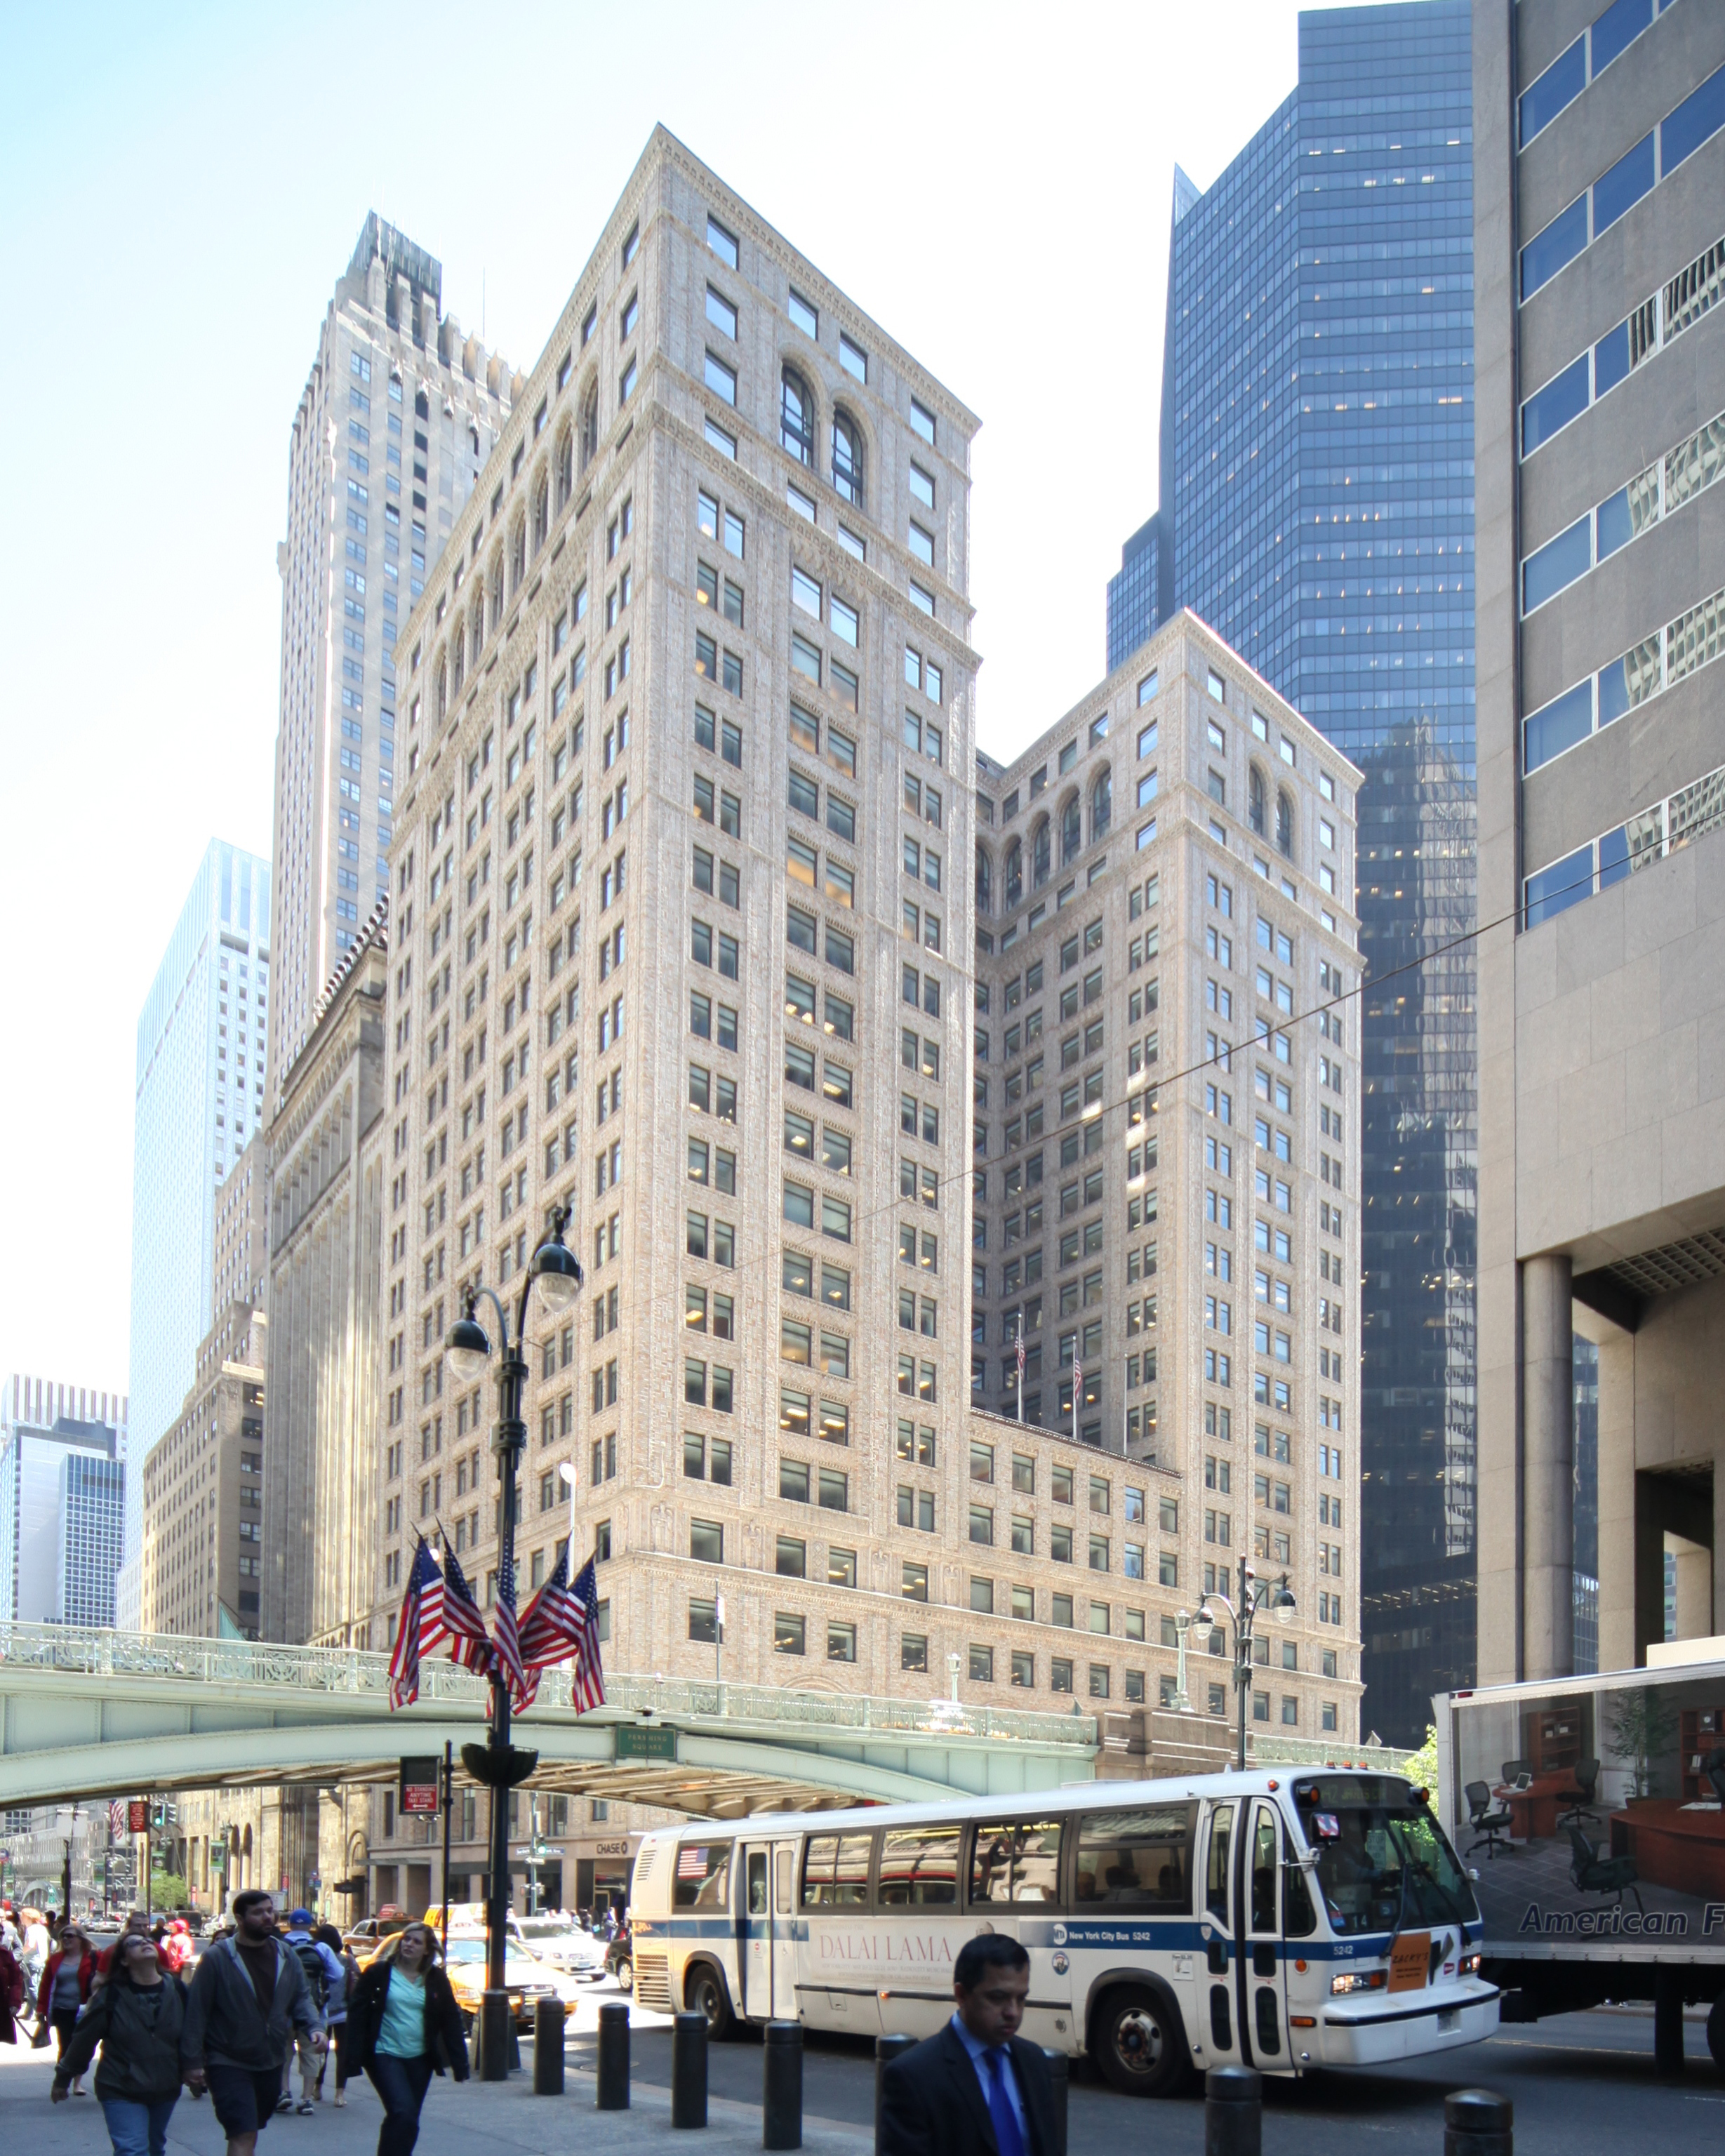 The Pershing Square Building at 125 Park Avenue. LPC photo